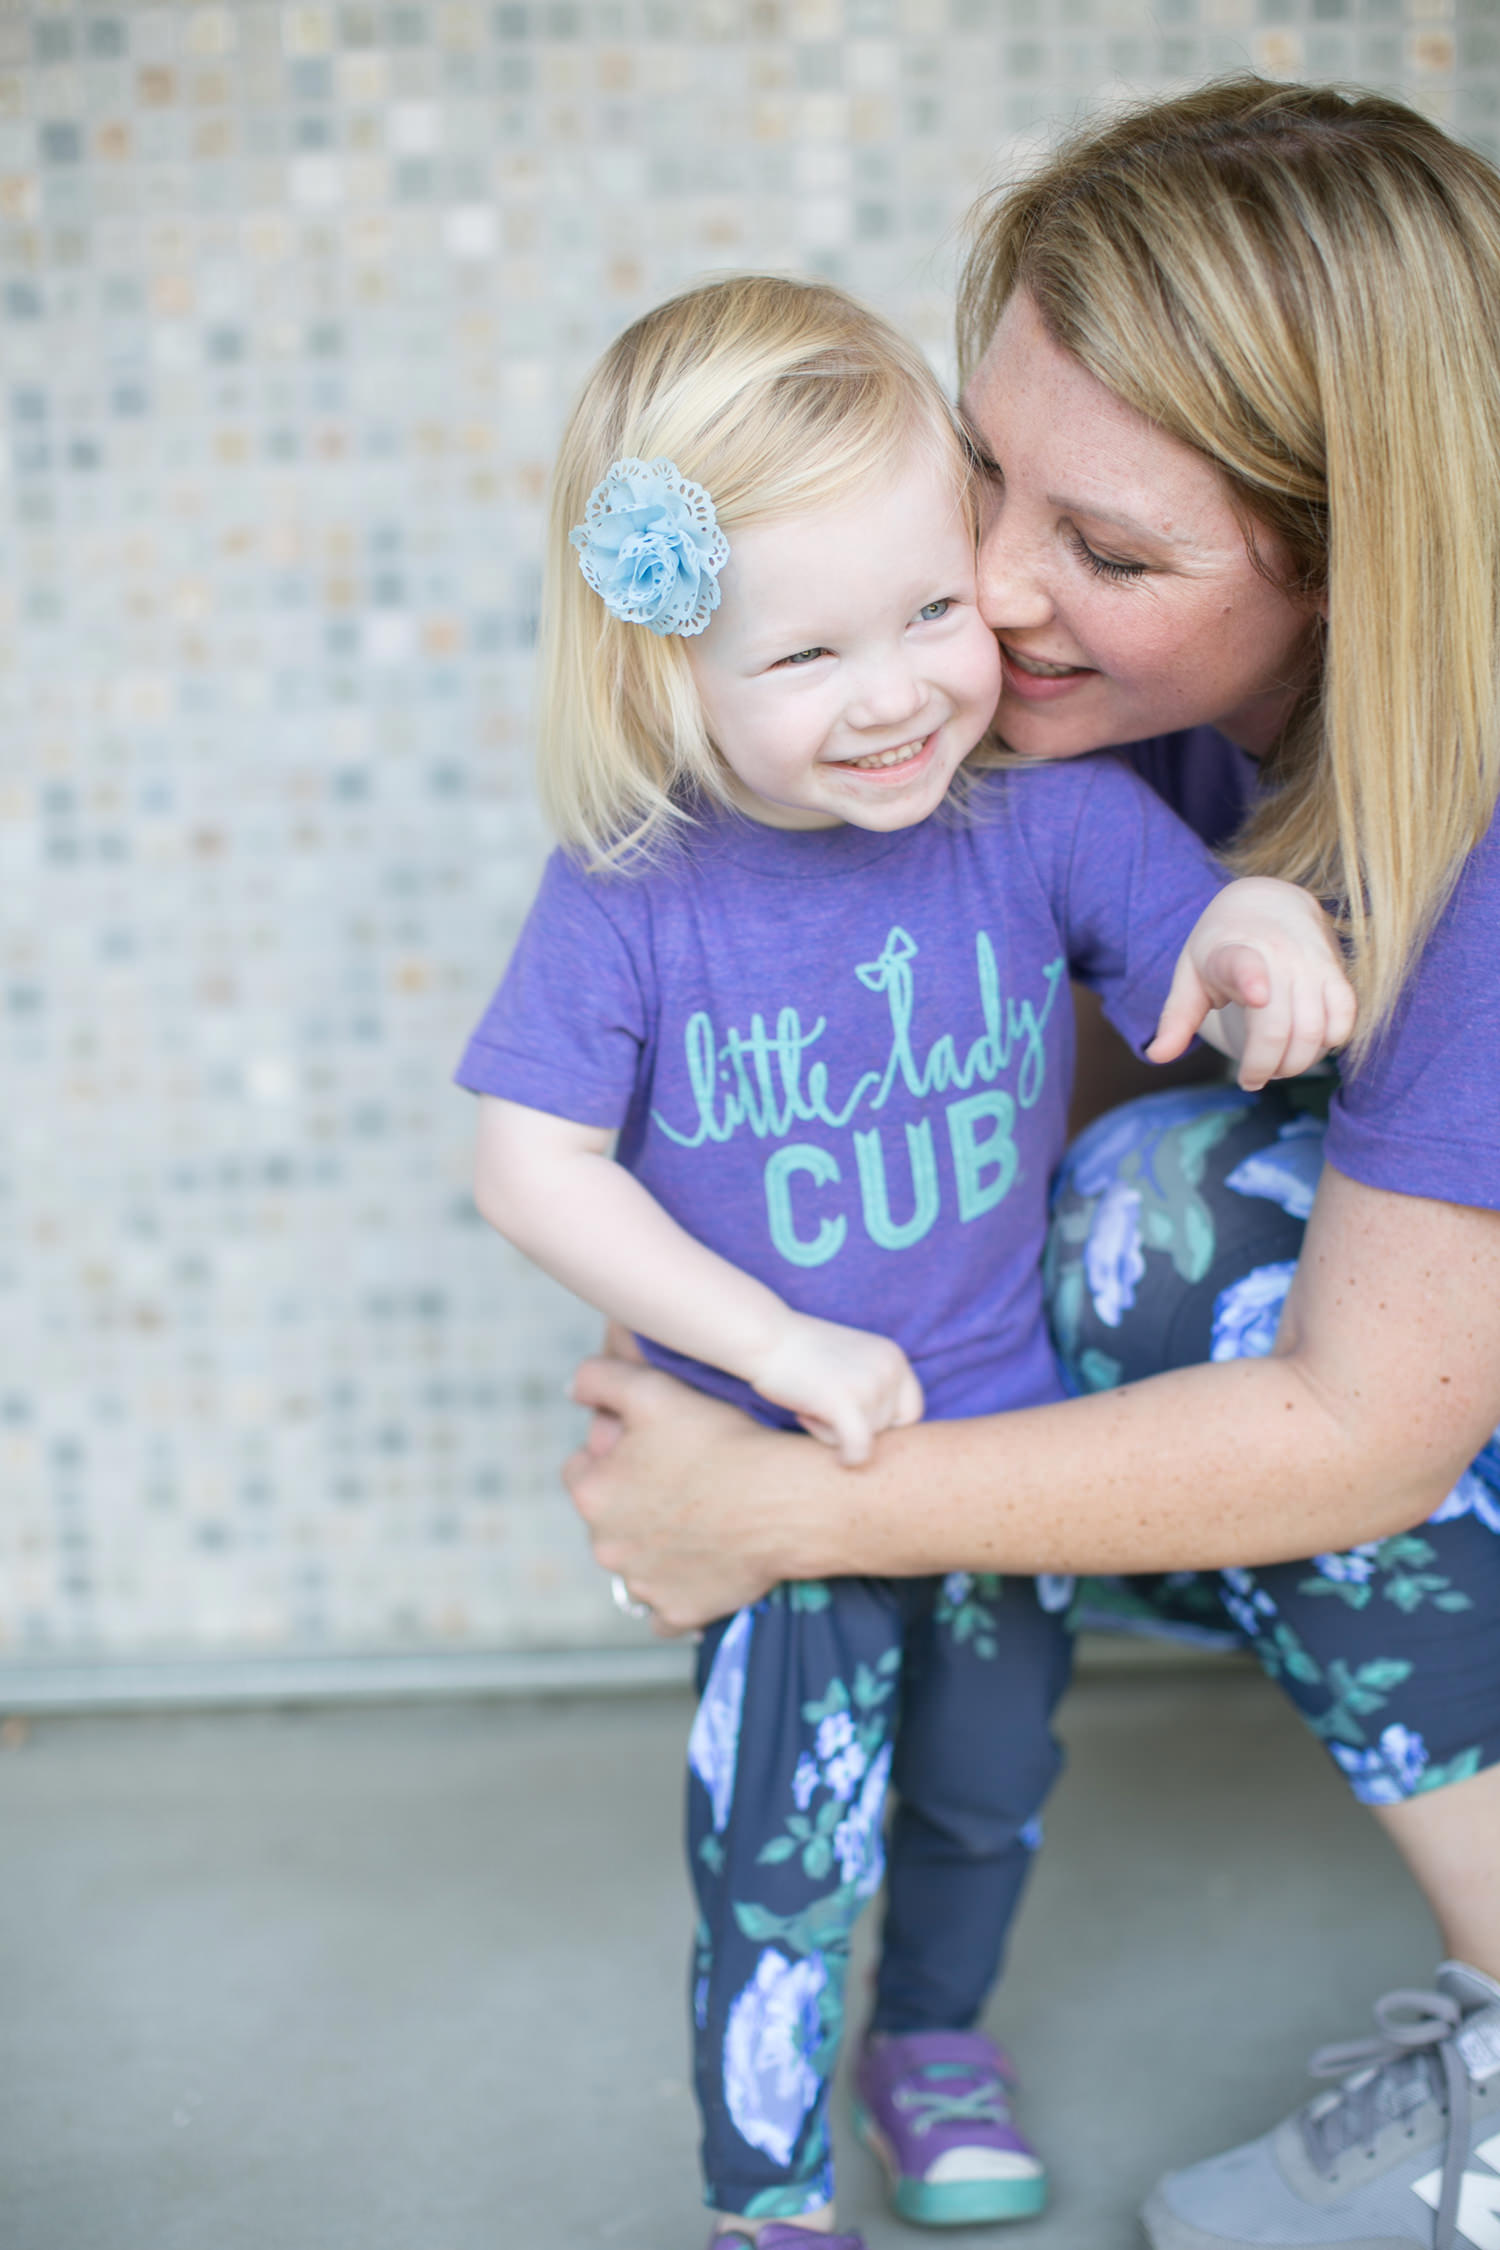 How cute is this little lady cub tee? It's the perfect mom outfit piece!